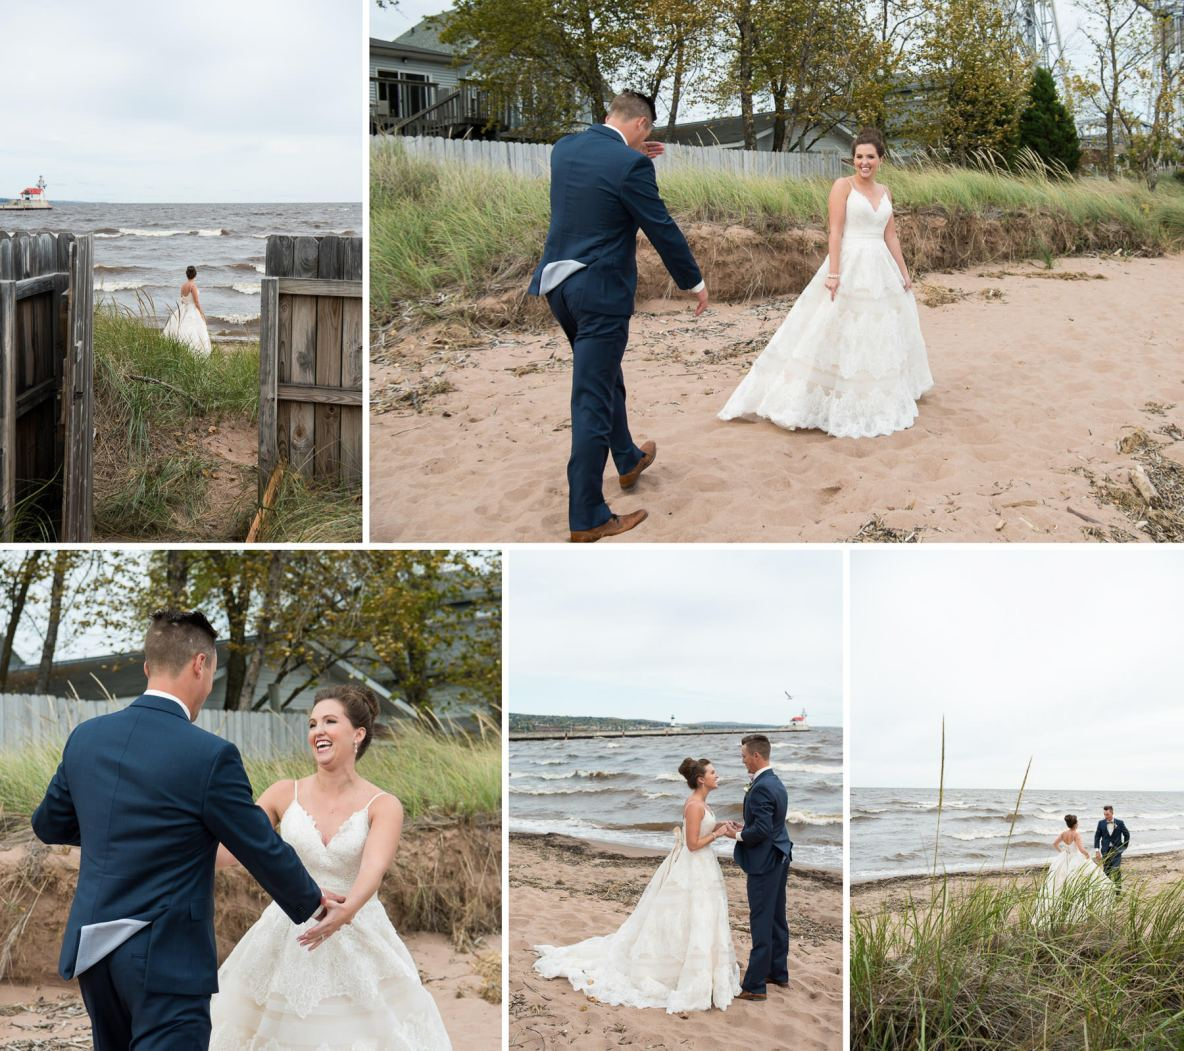 Bride and groom photos on the beach.